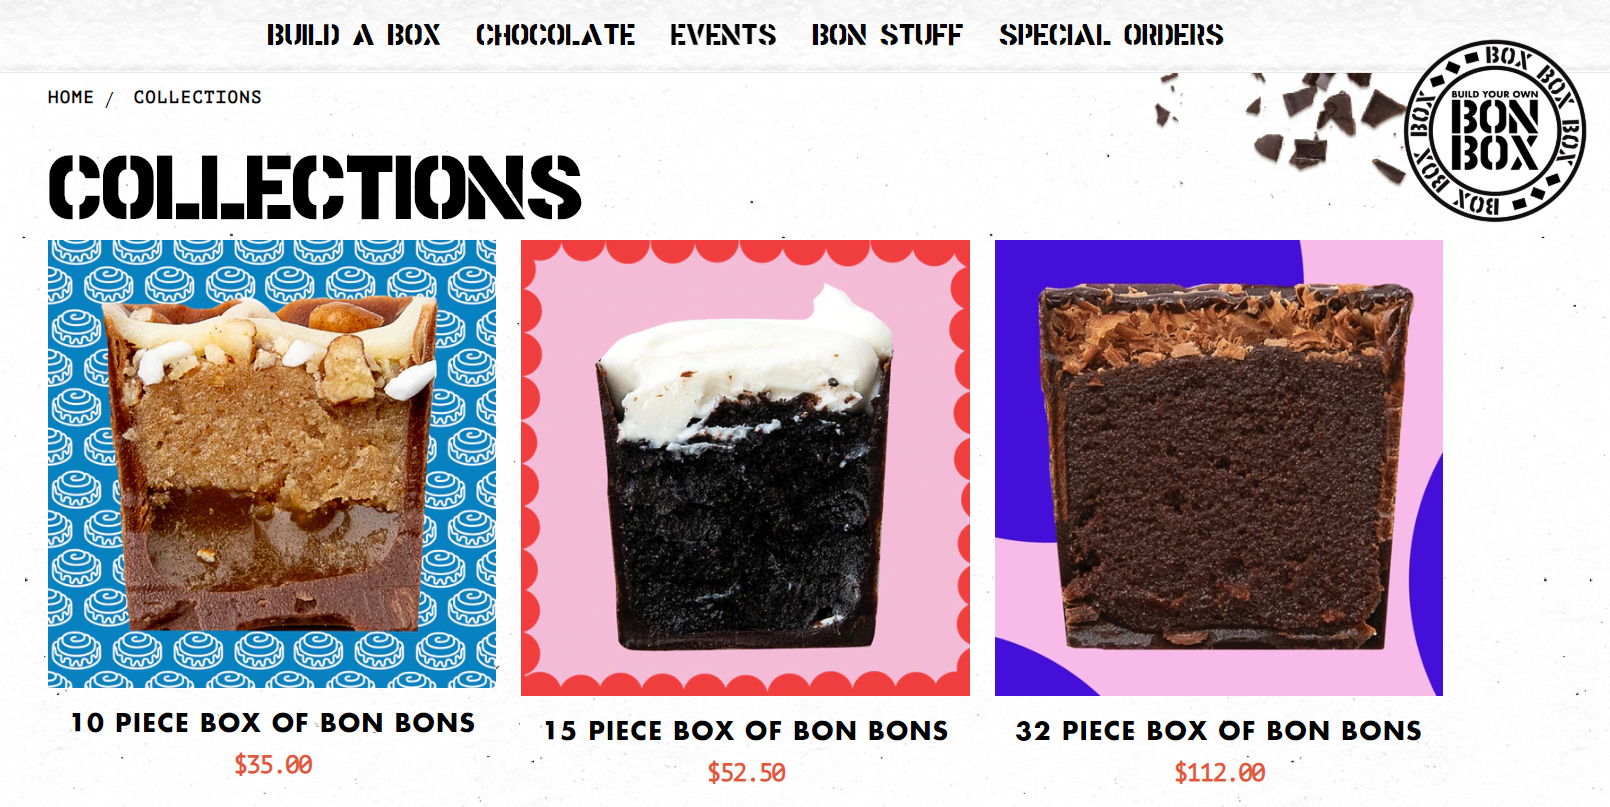 bon bon bon website design inspiration - itag media